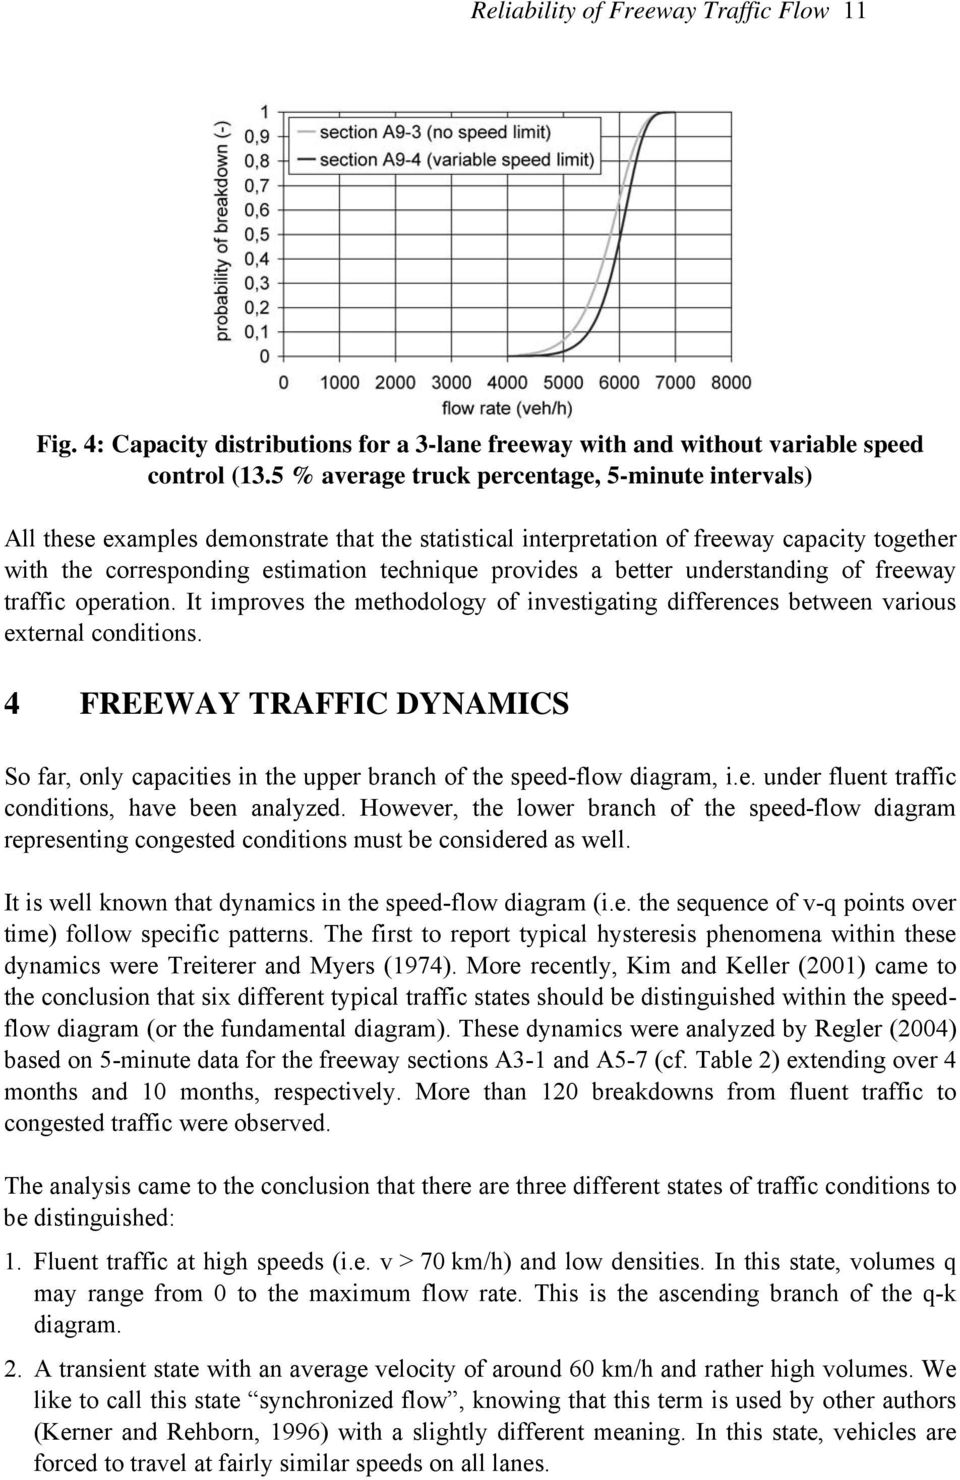 a better understanding of freeway traffic operation. It improves the methodology of investigating differences between various external conditions.